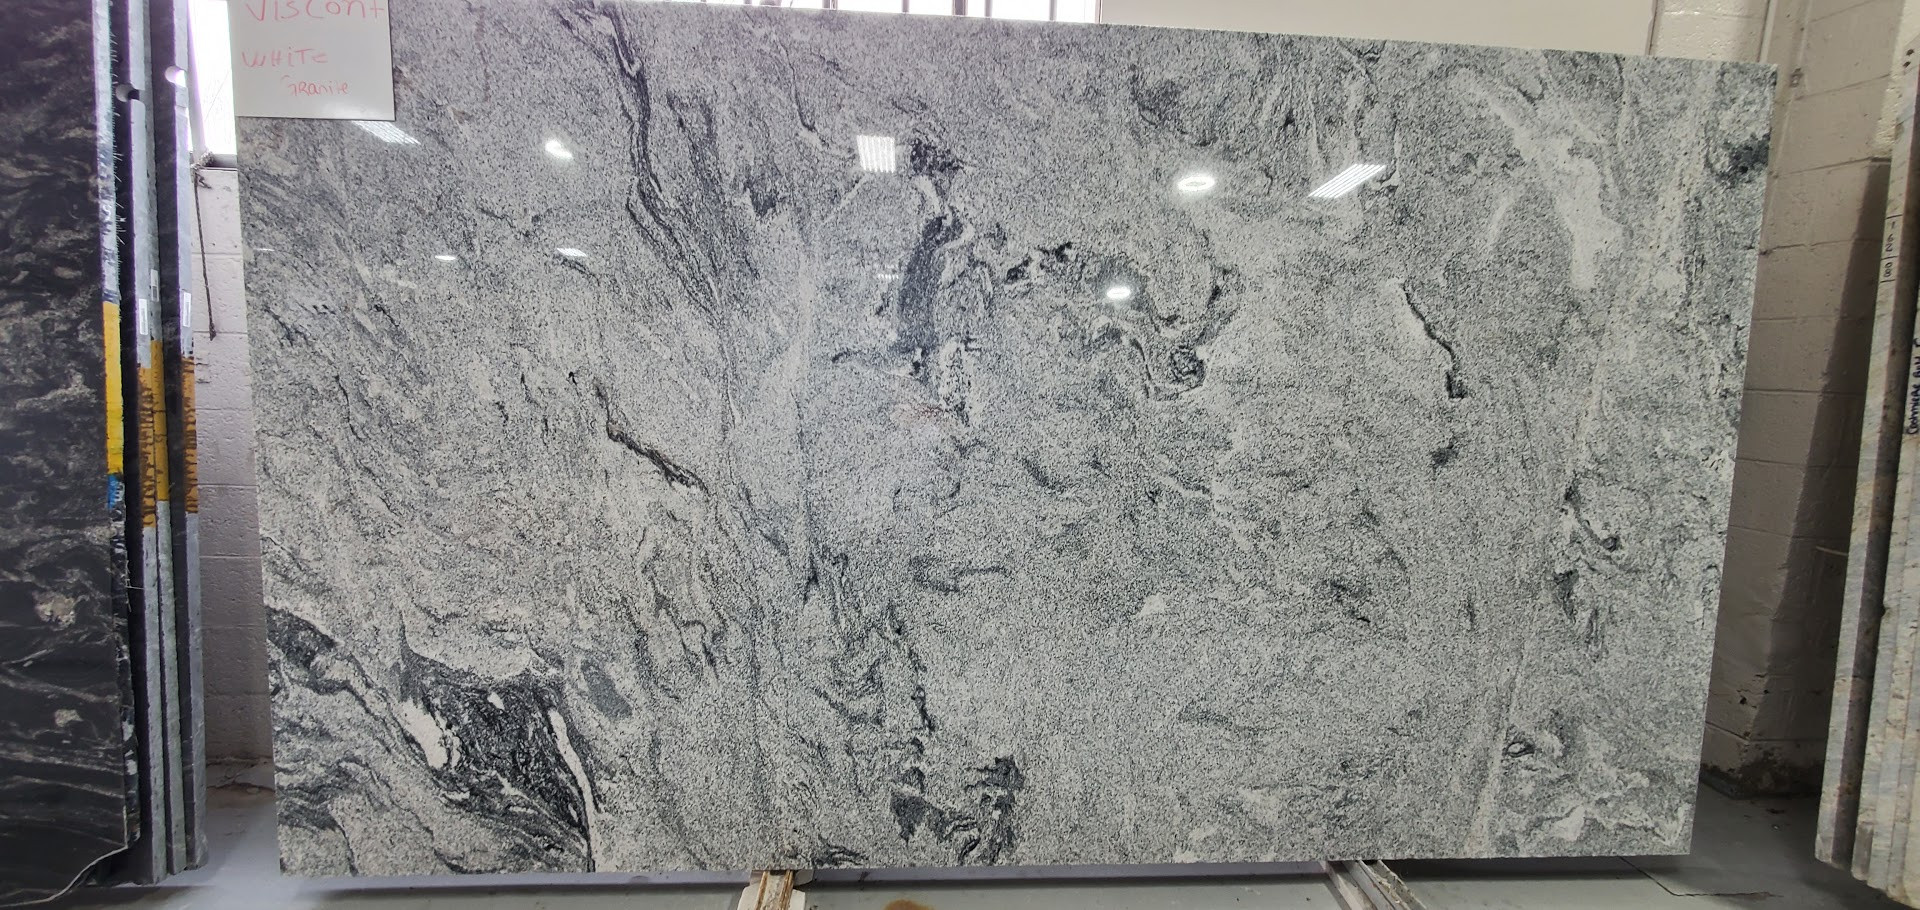 VISCONT WHITE GRANITE